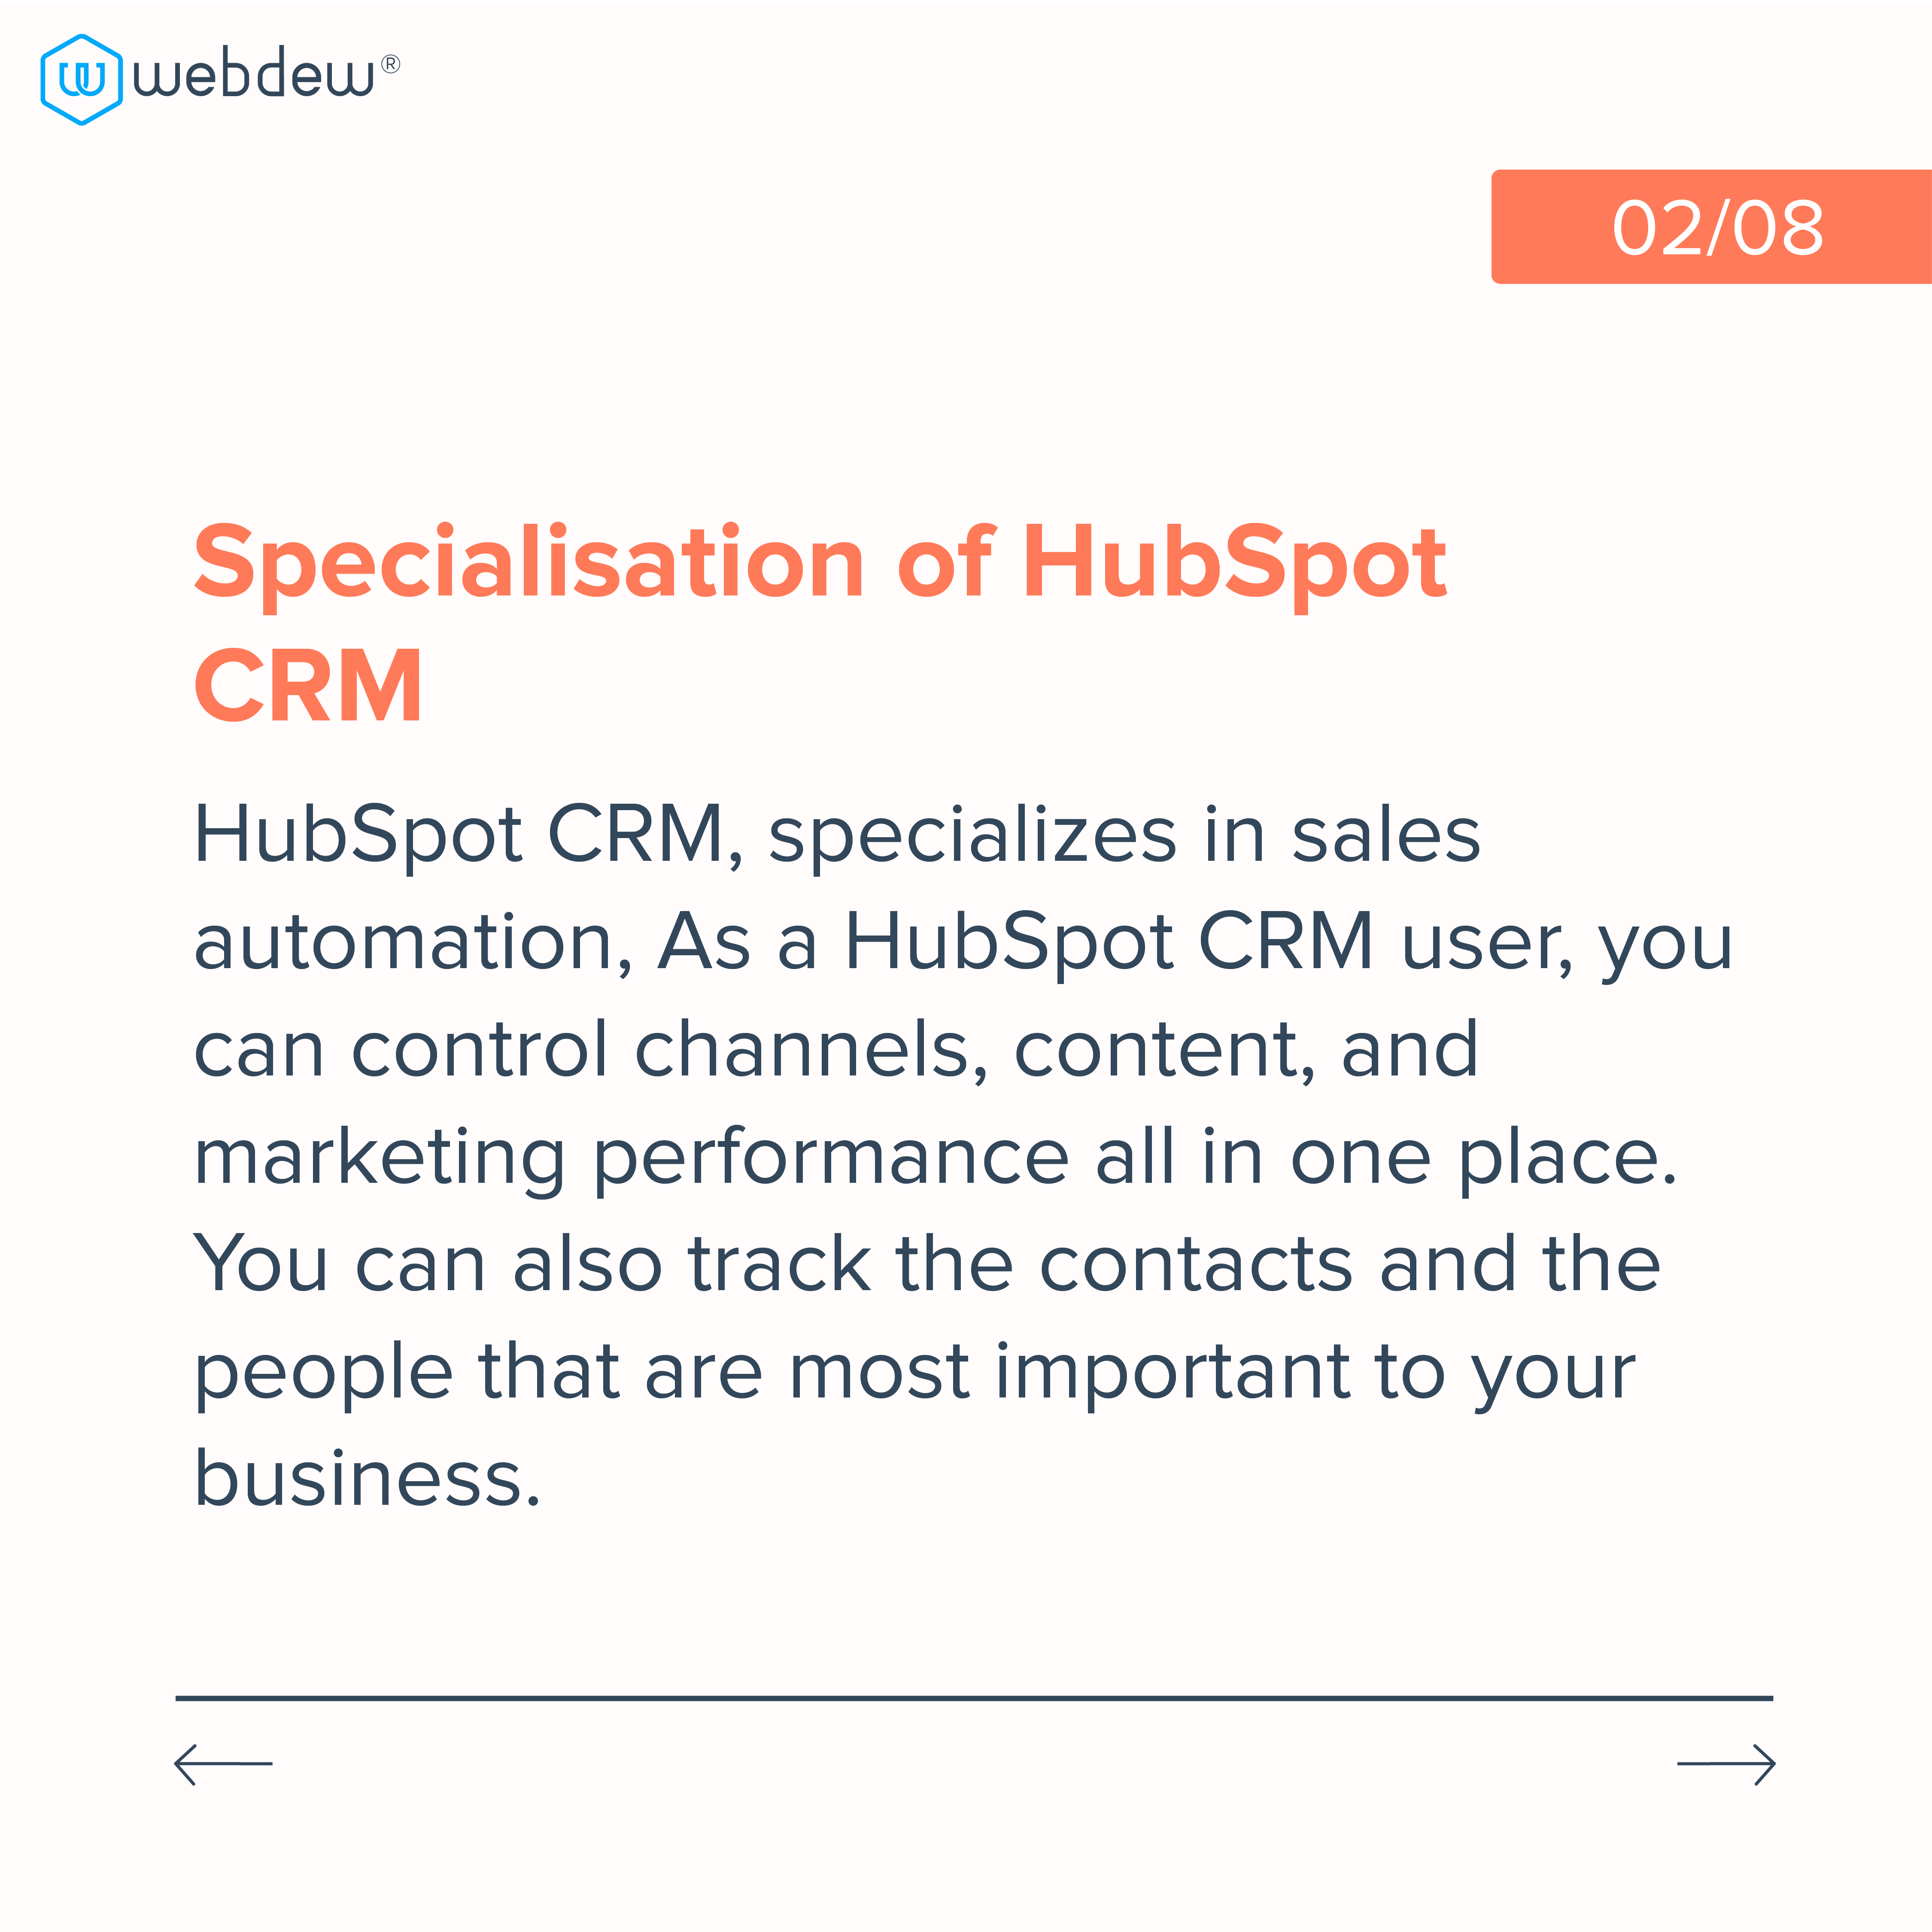 2. specialization of hubspot CRM